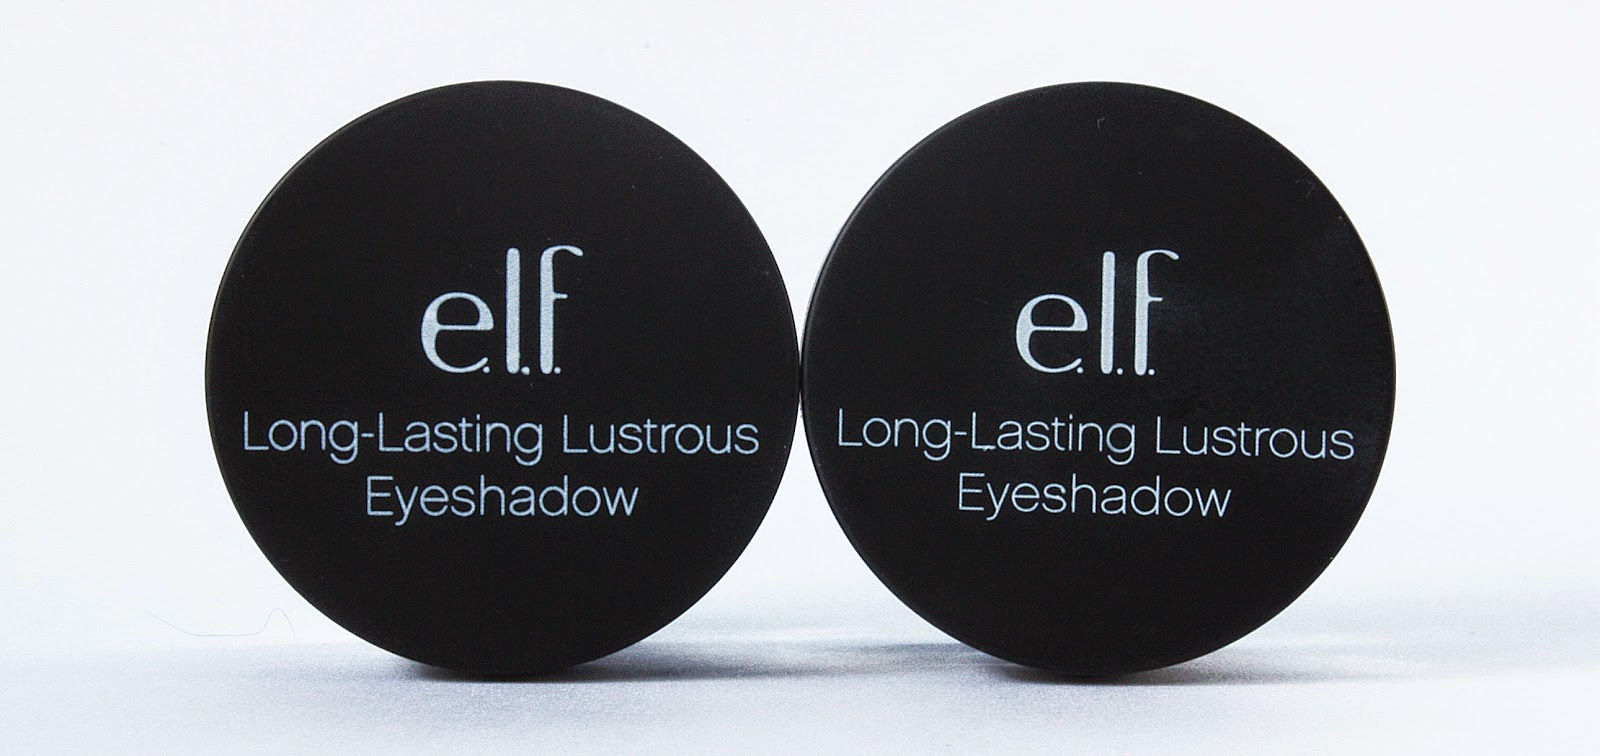 elf long-lasting lustrous eyeshadow